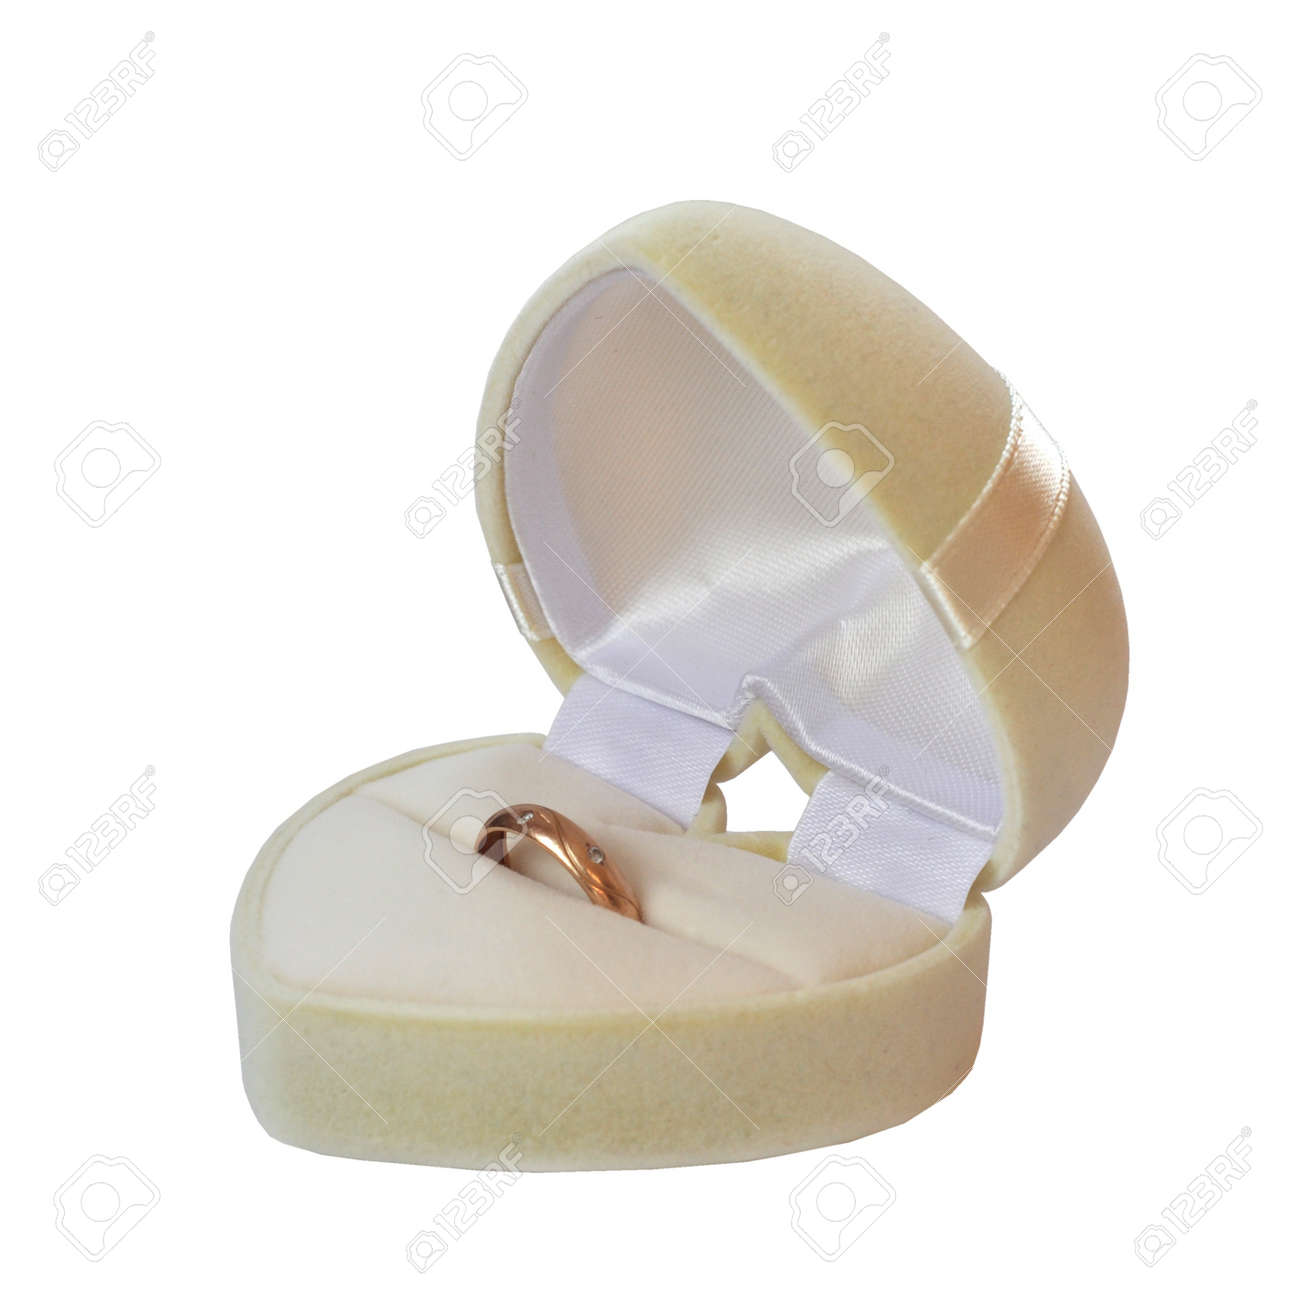 Box in the form of a white heart with wedding ring isolated on white background Stock Photo - 16142481